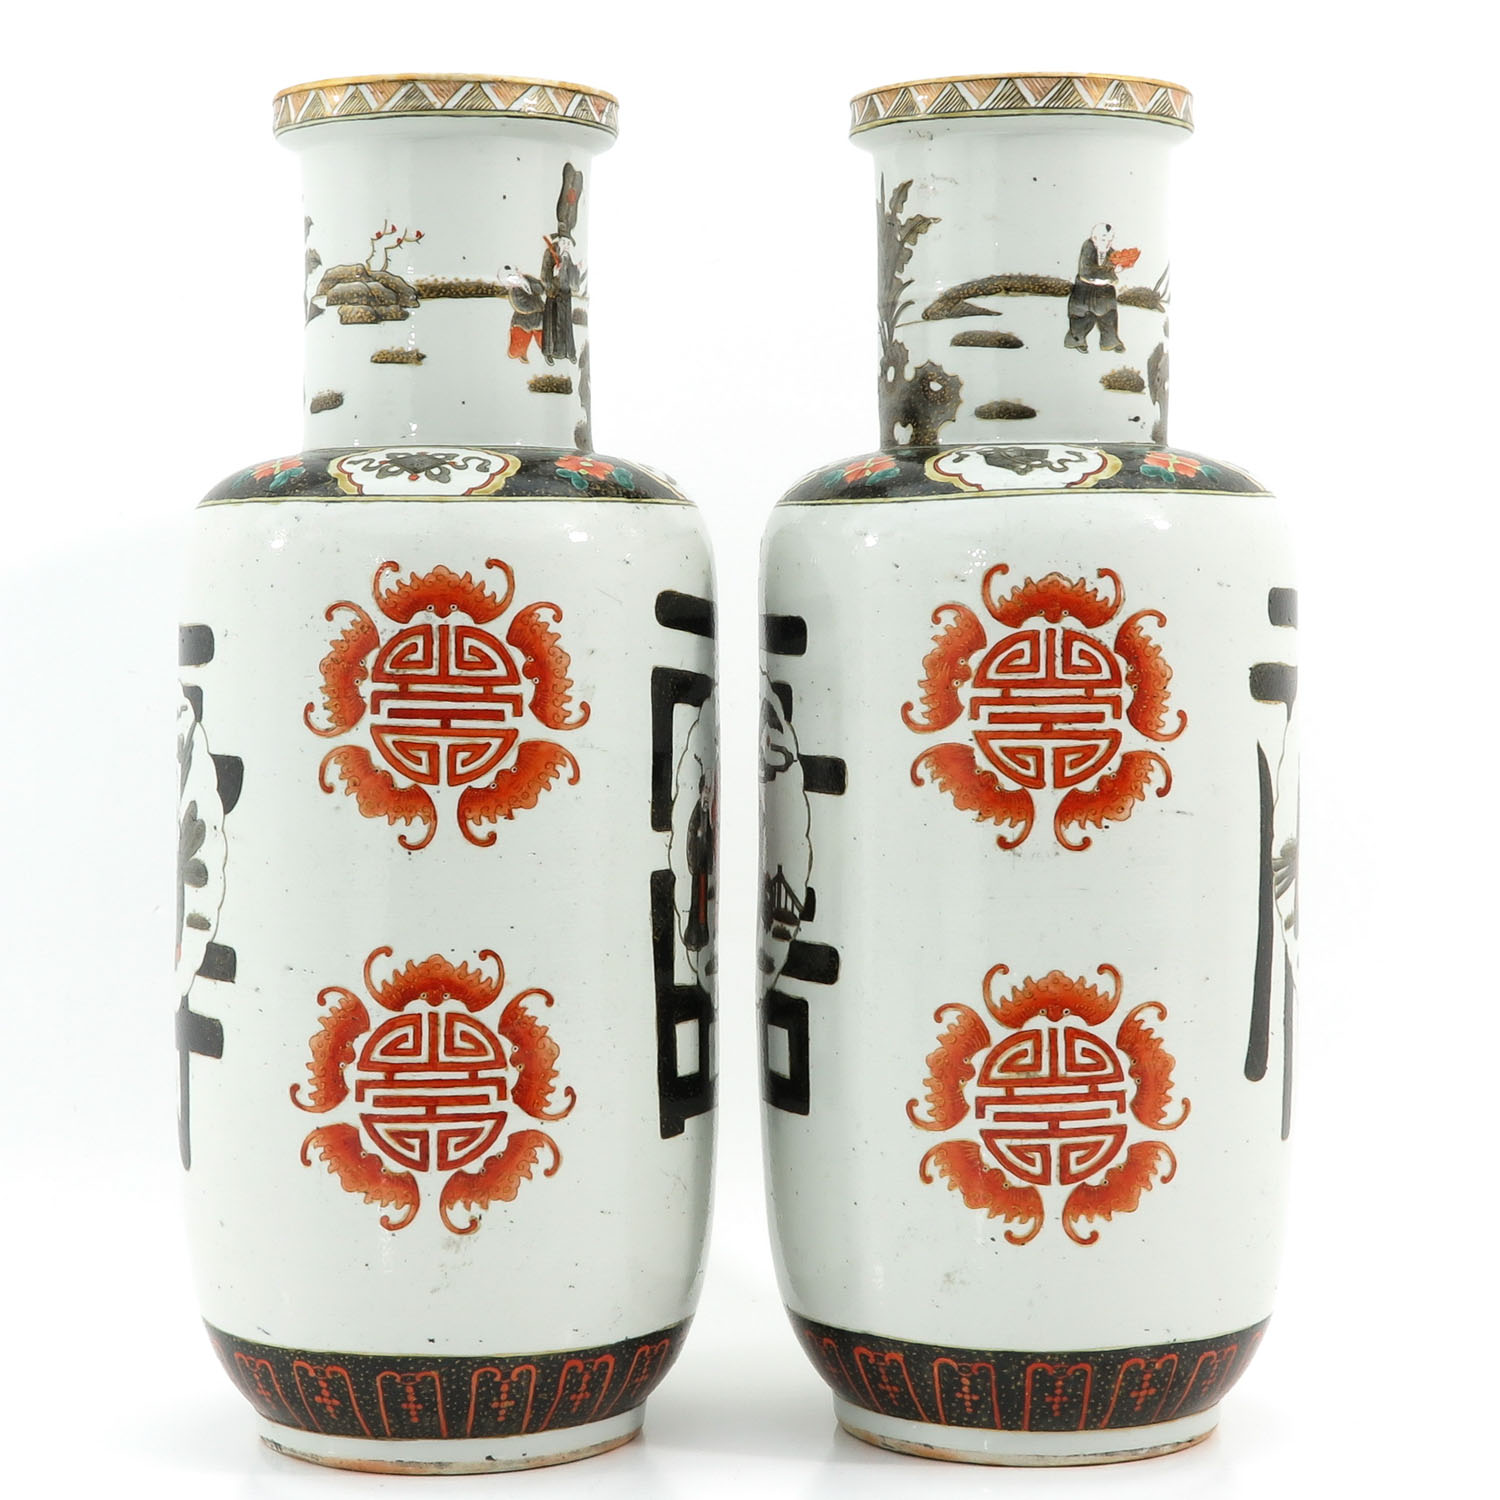 A Pair of Polychrome Decor Vases - Image 4 of 10